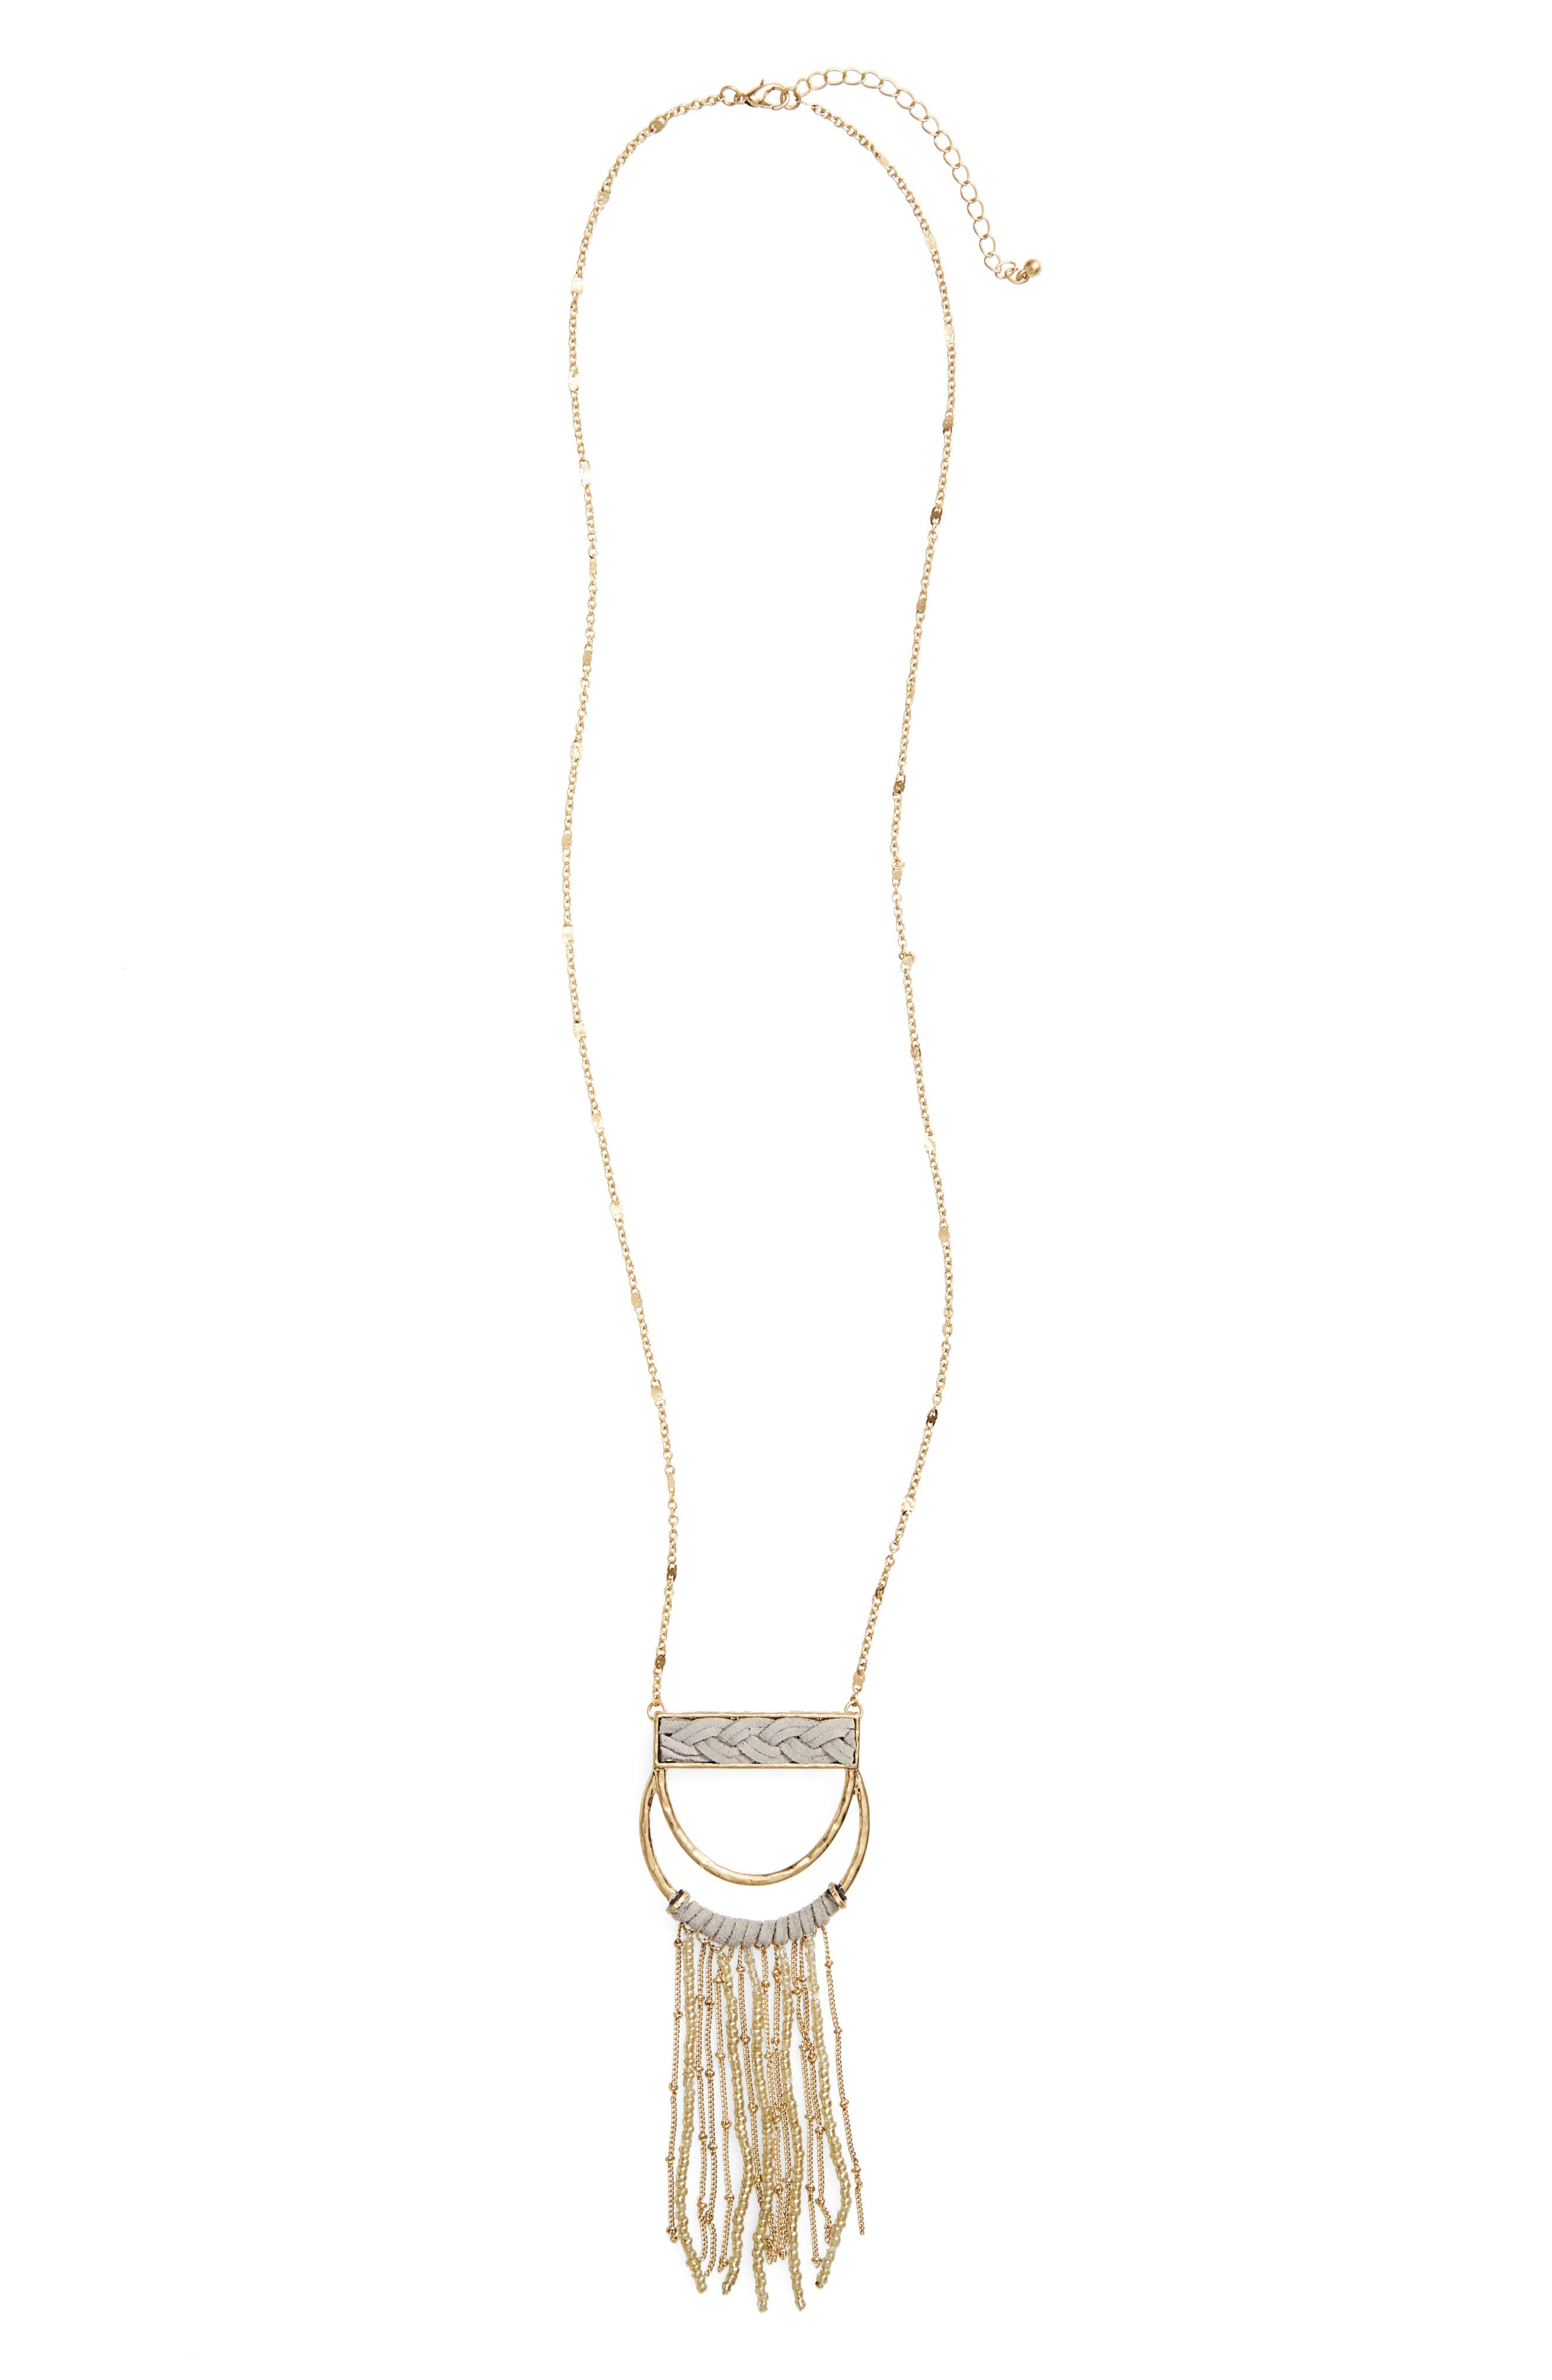 Alternate Image 1 Selected - Panacea Suede Wrapped Pendant Necklace with Beaded Fringe